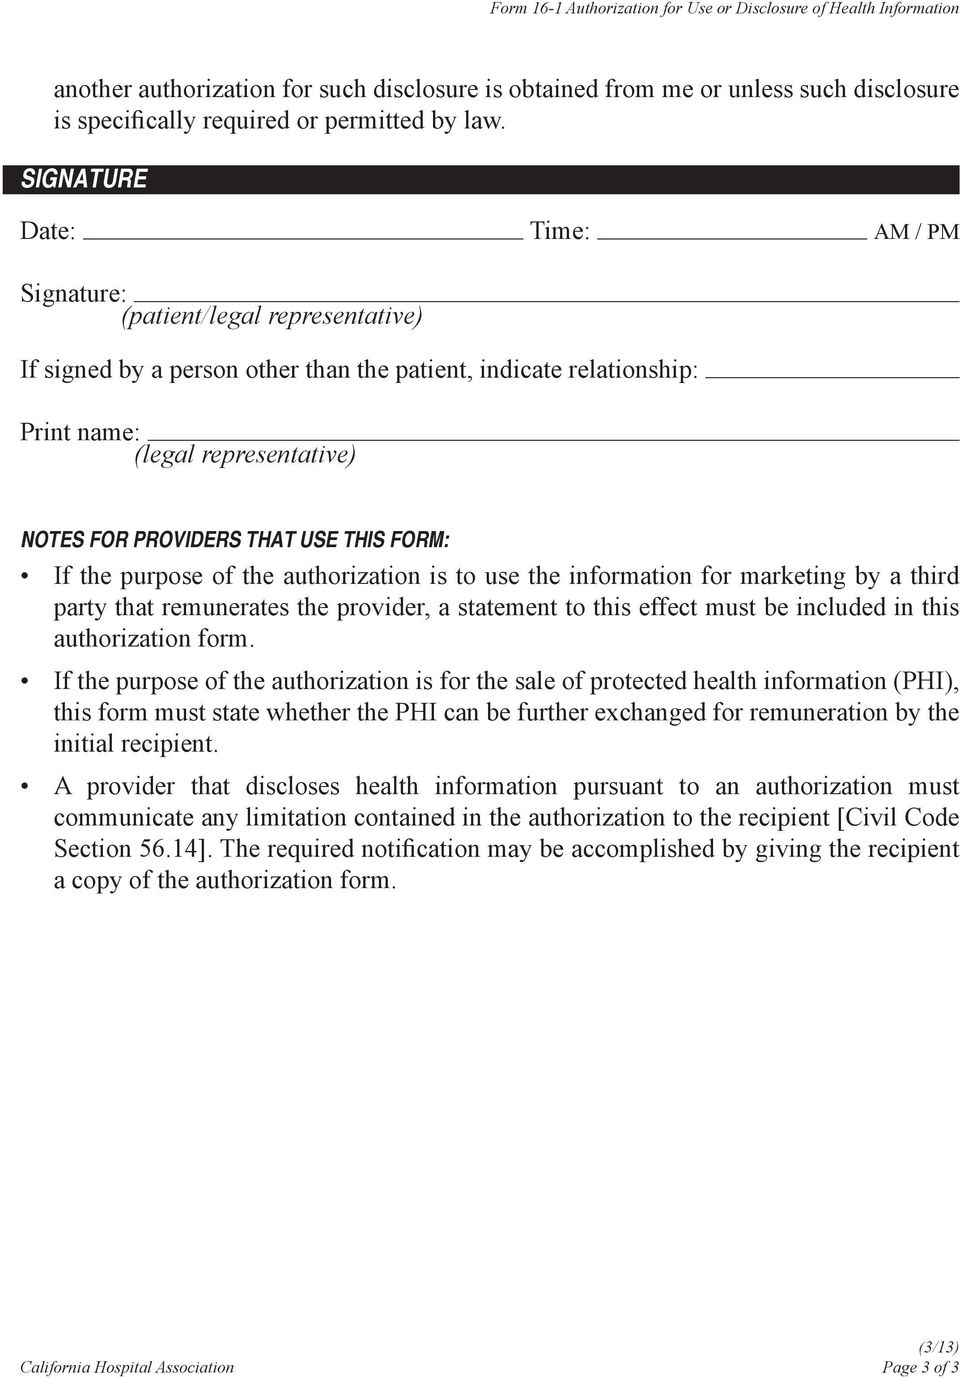 PROVIDERS THAT USE THIS FORM: If the purpose of the authorization is to use the information for marketing by a third party that remunerates the provider, a statement to this effect must be included